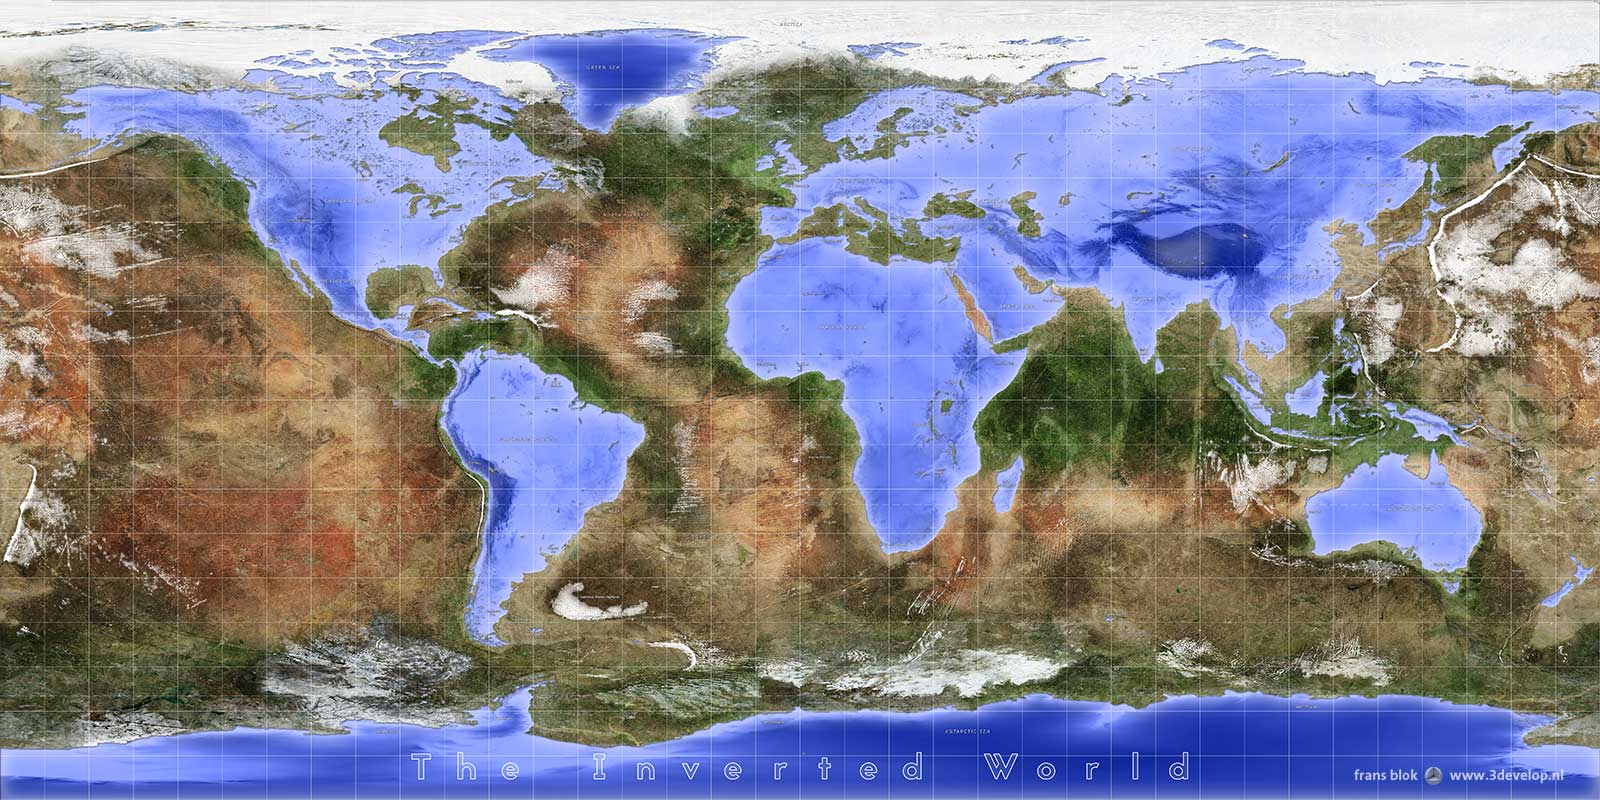 The inverted world map where land and sea have been swapped